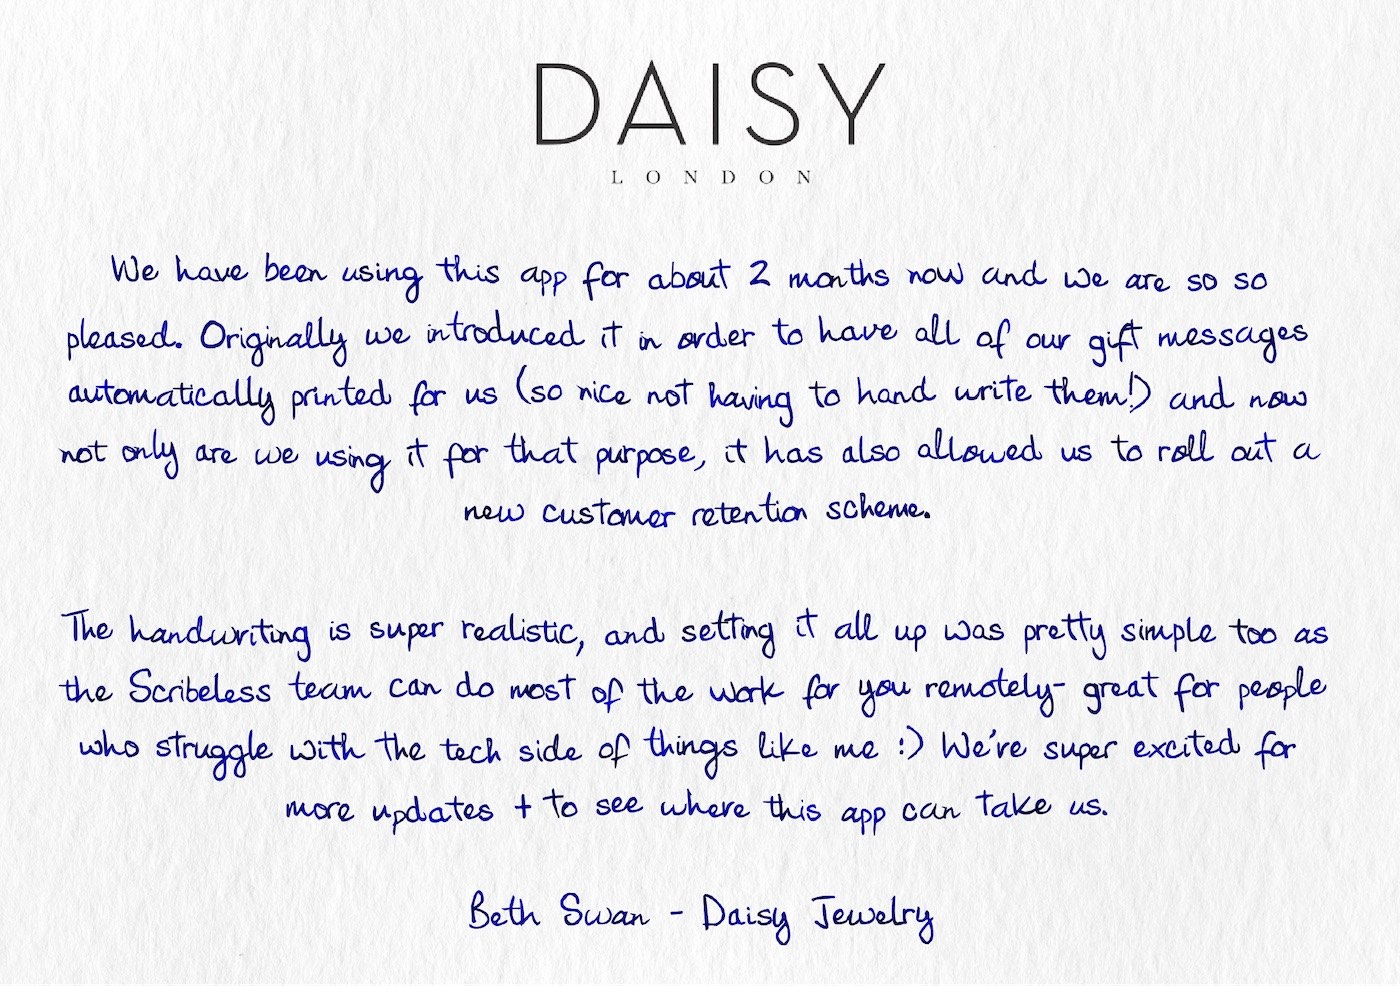 Daisy Jewelry's testimonial on a handwritten note.